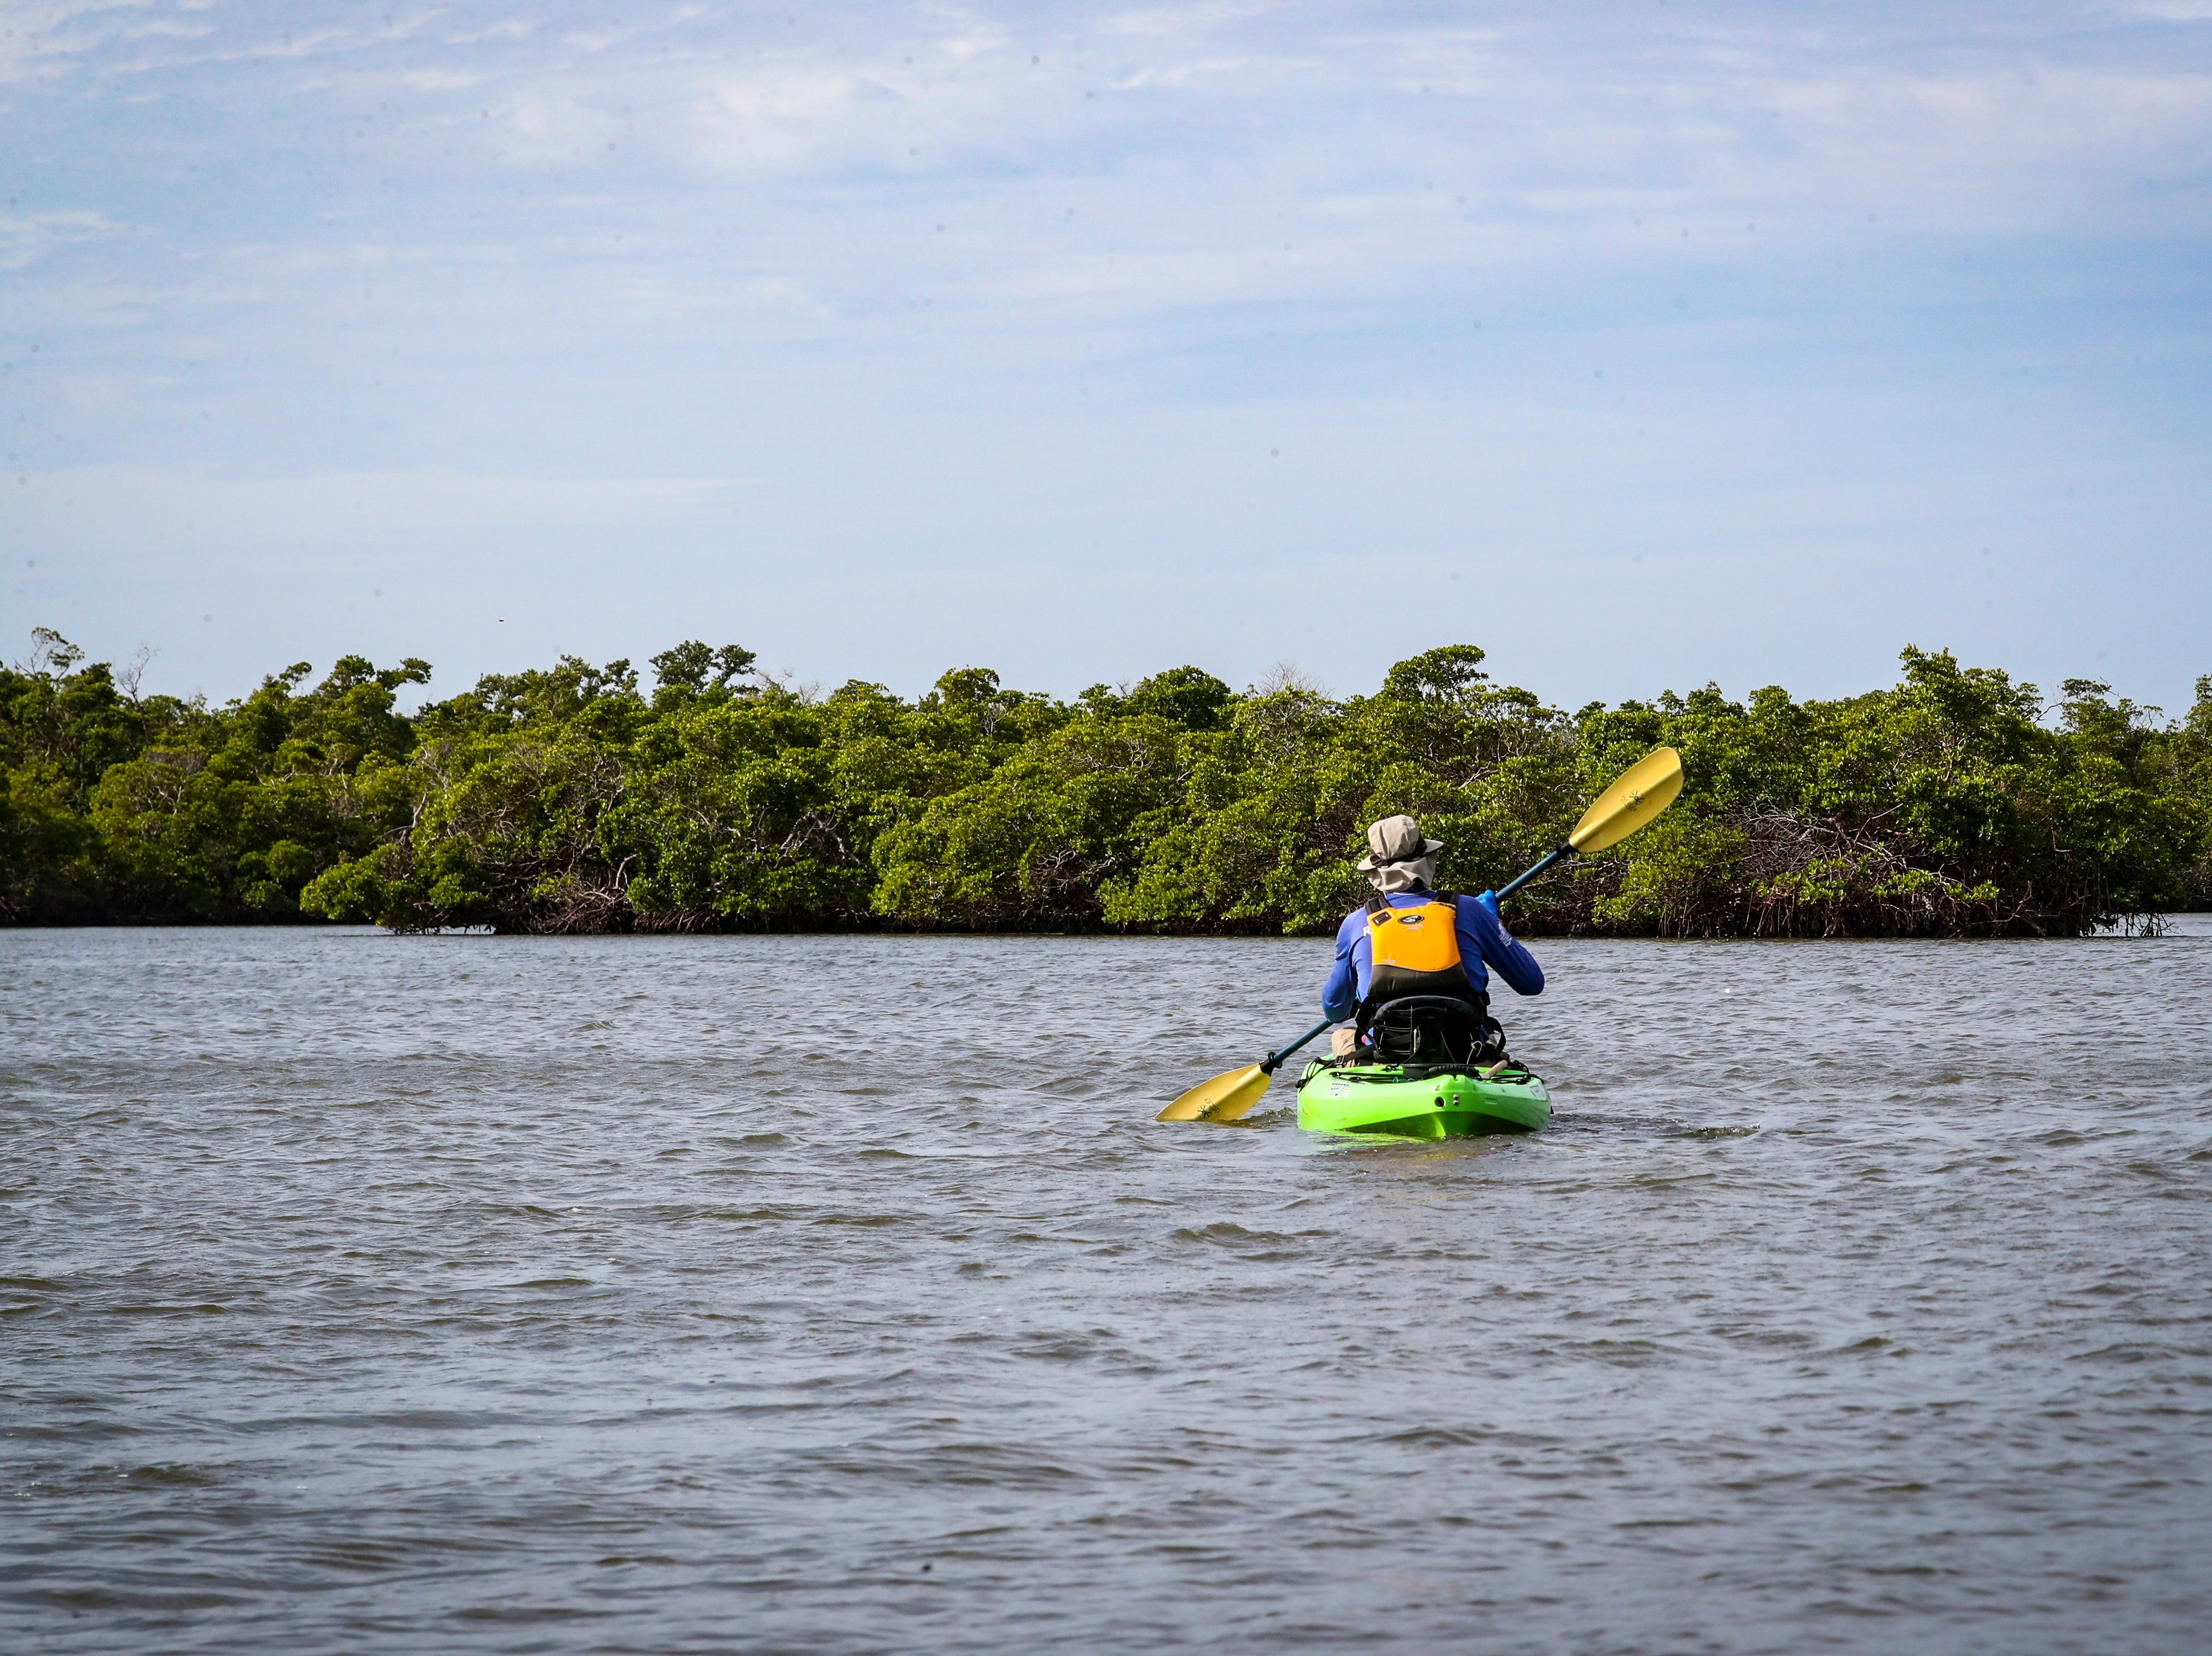 Randy McCormick, captain and guide, leads the group out into the water. Rookery Bay National Estuarine Research Reserve in Naples offers a two-hour guided kayak tour of Rookery Bay. This tour provides an up-close and personal experience of this irreplaceable national treasure. Paddle through the shallows and maze like mangrove tunnels while learning about  surroundings from an experienced guide and naturalist. Randy McCormick, captain and guide, has worked at the Reserve for many years and knows the area intimately. He is a Certified Interpretive Guide, an instructor in the Florida Master Naturalist program and a fifth generation Floridian.